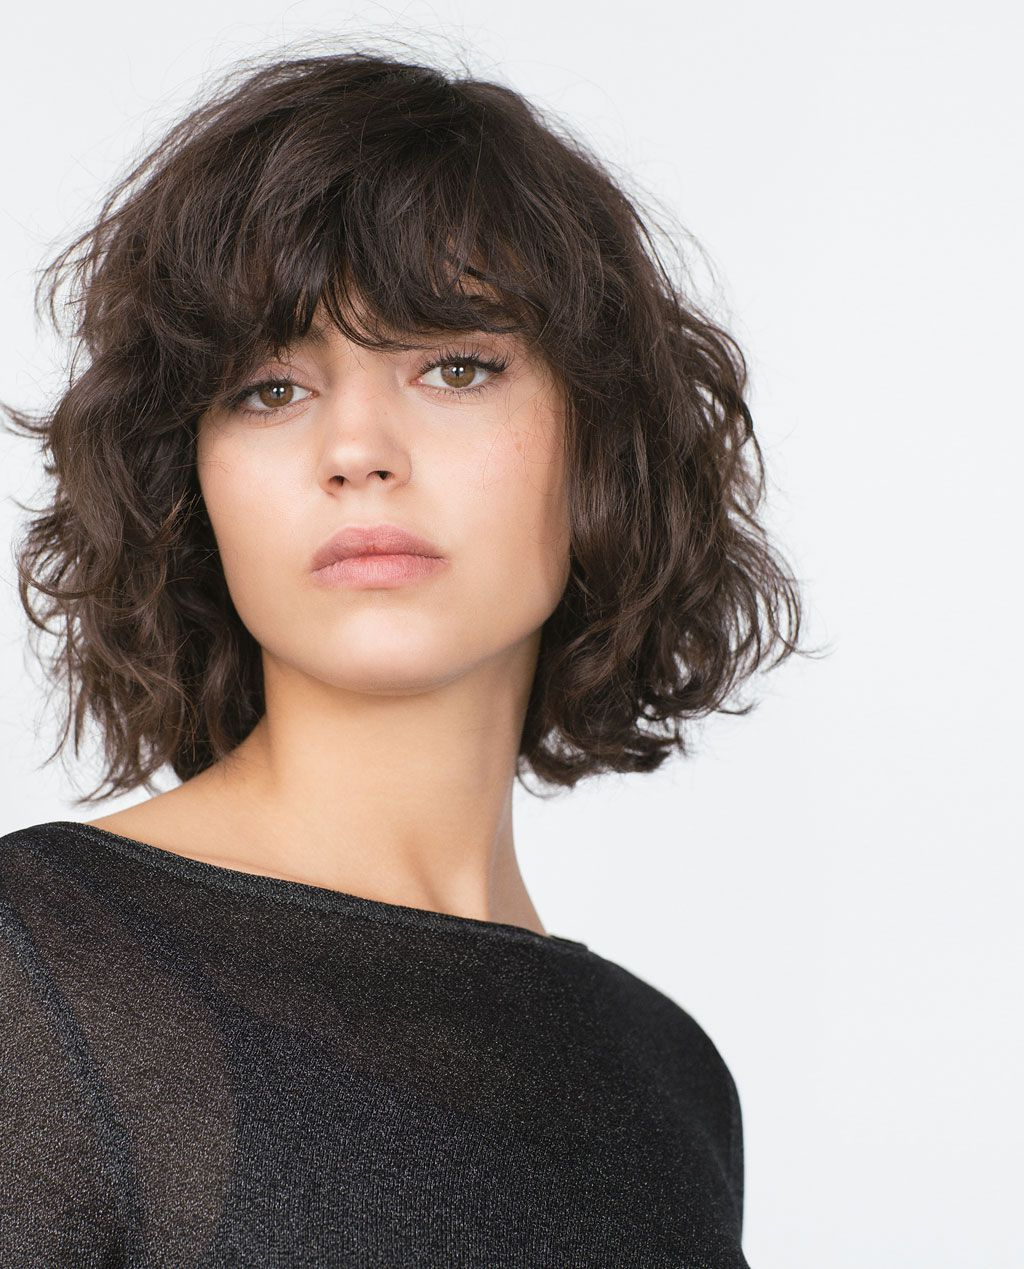 Hair & Beauty In 2019 Within Fashionable Side Swept Curls And Draped Bangs Hairstyles (Gallery 1 of 20)